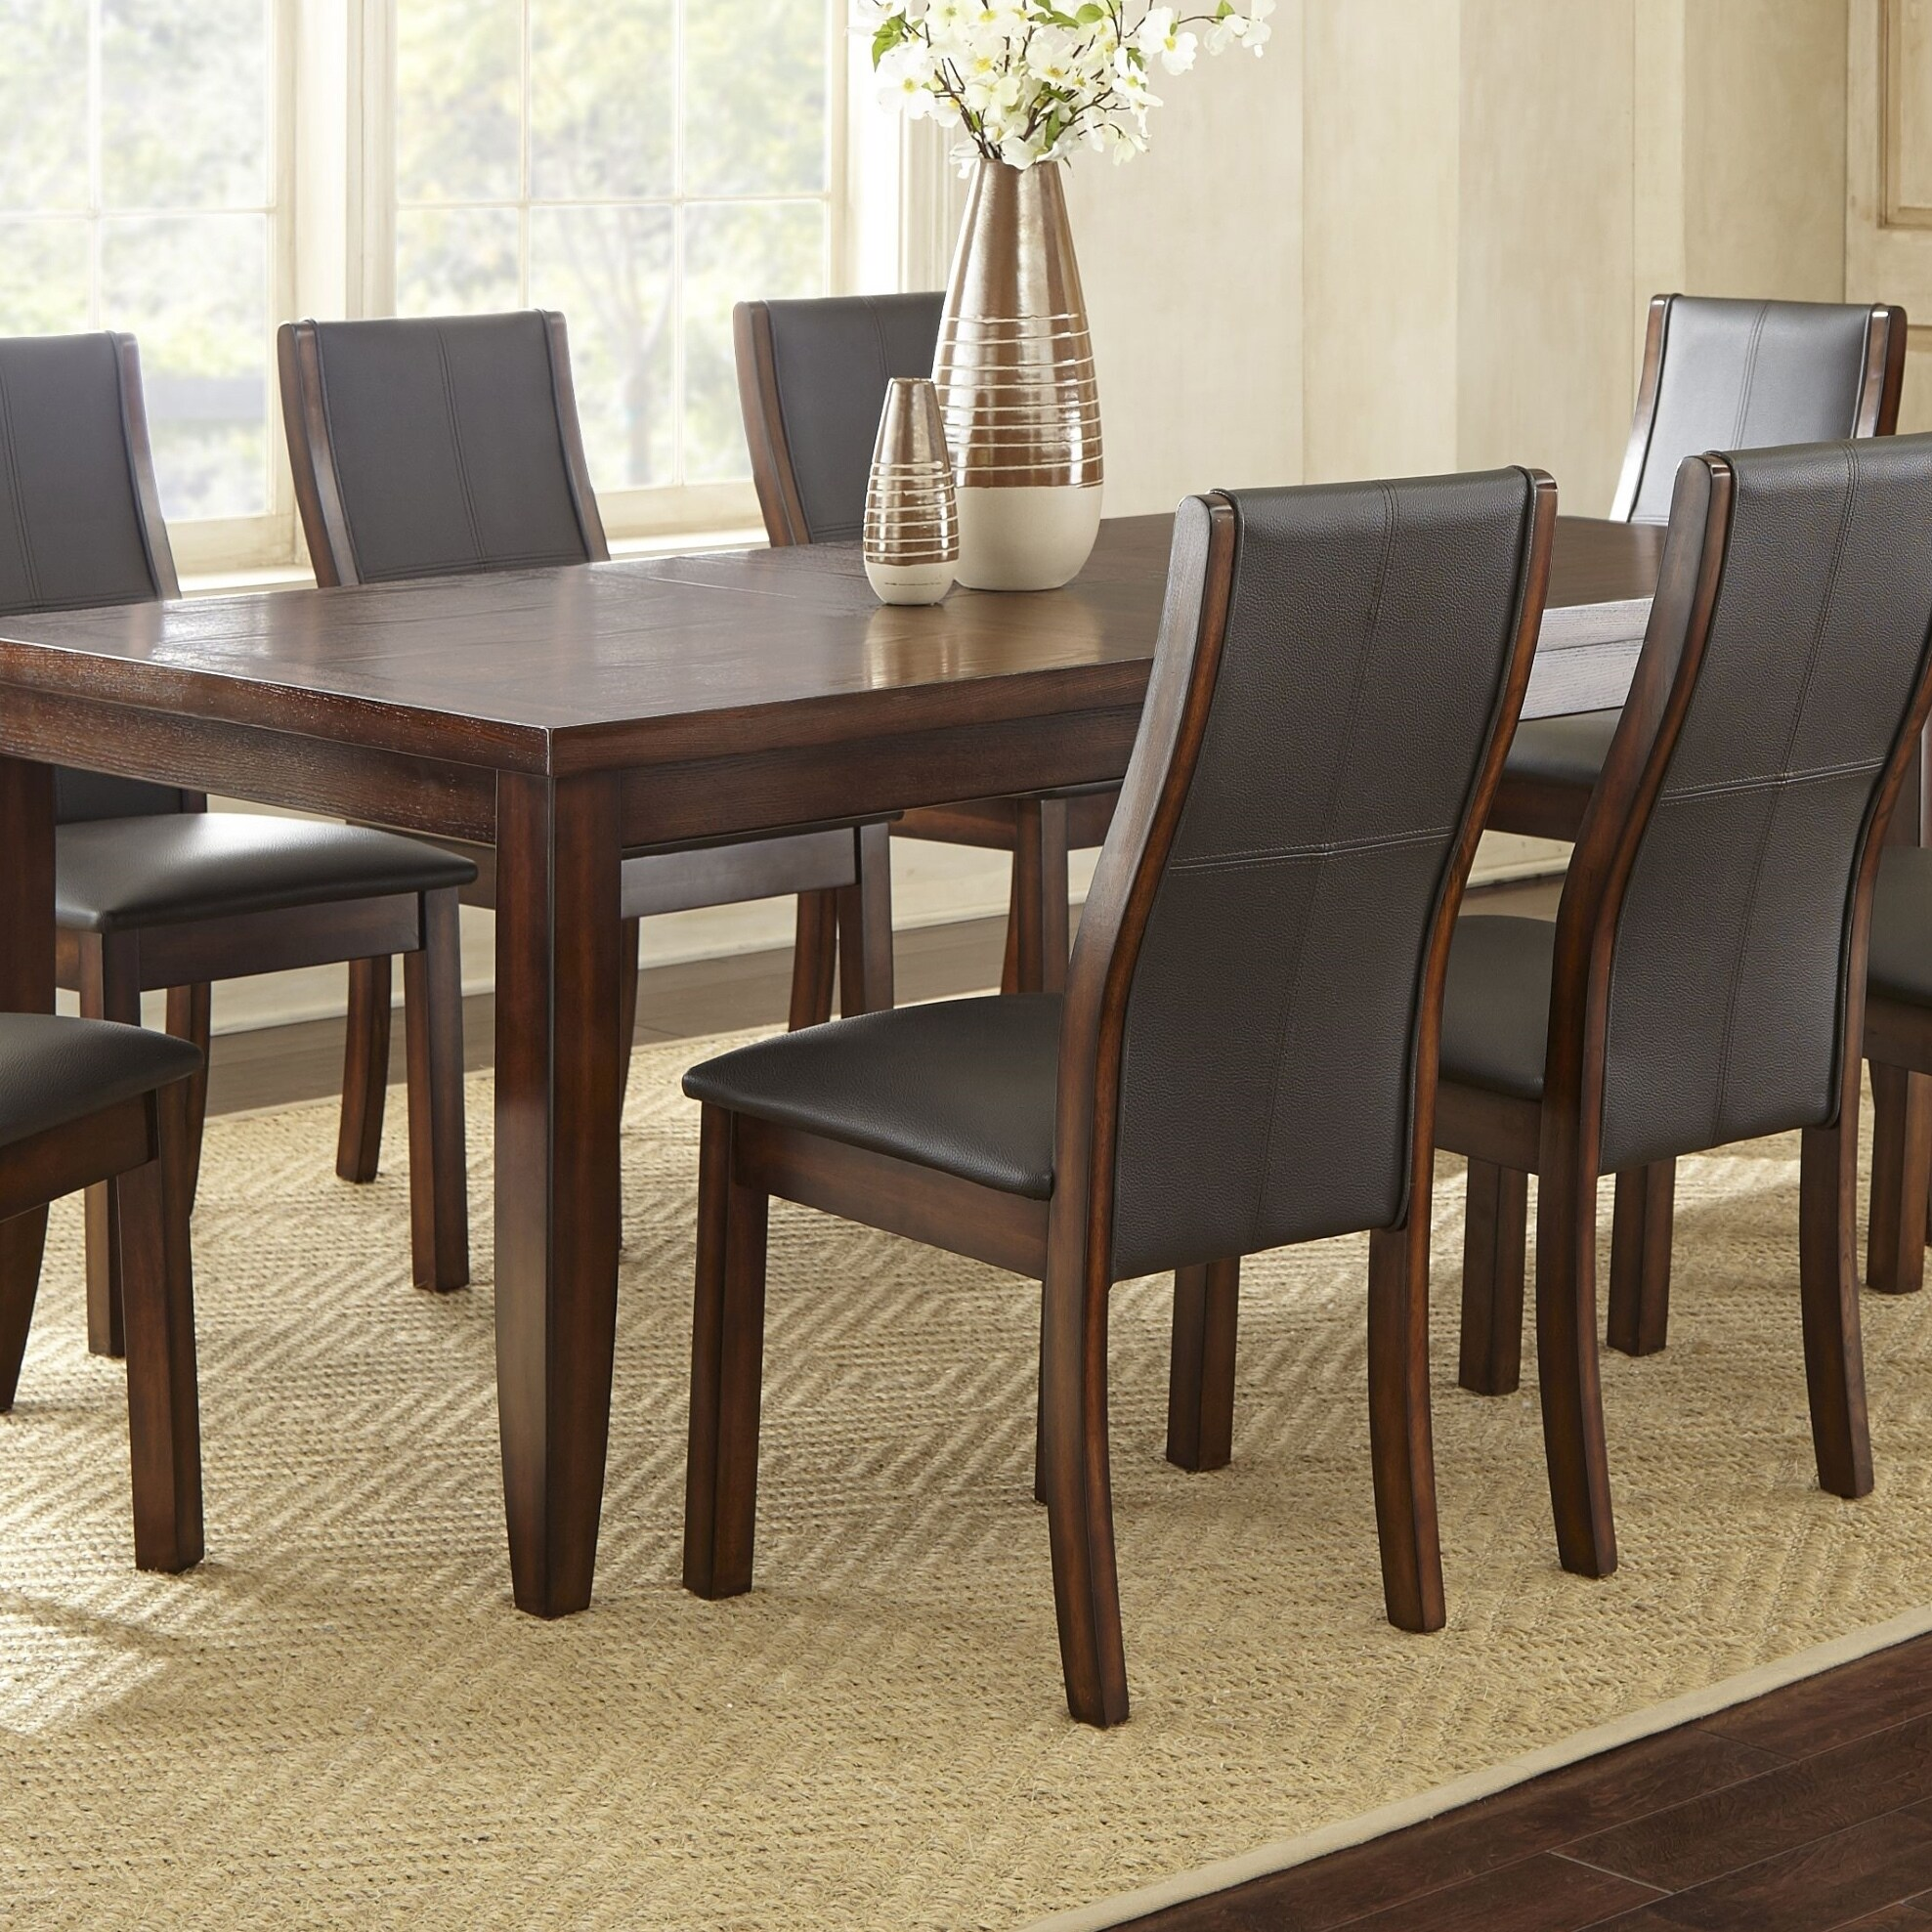 Tempe 81 inch Dining Table with Self Storing Butterfly Leaf by